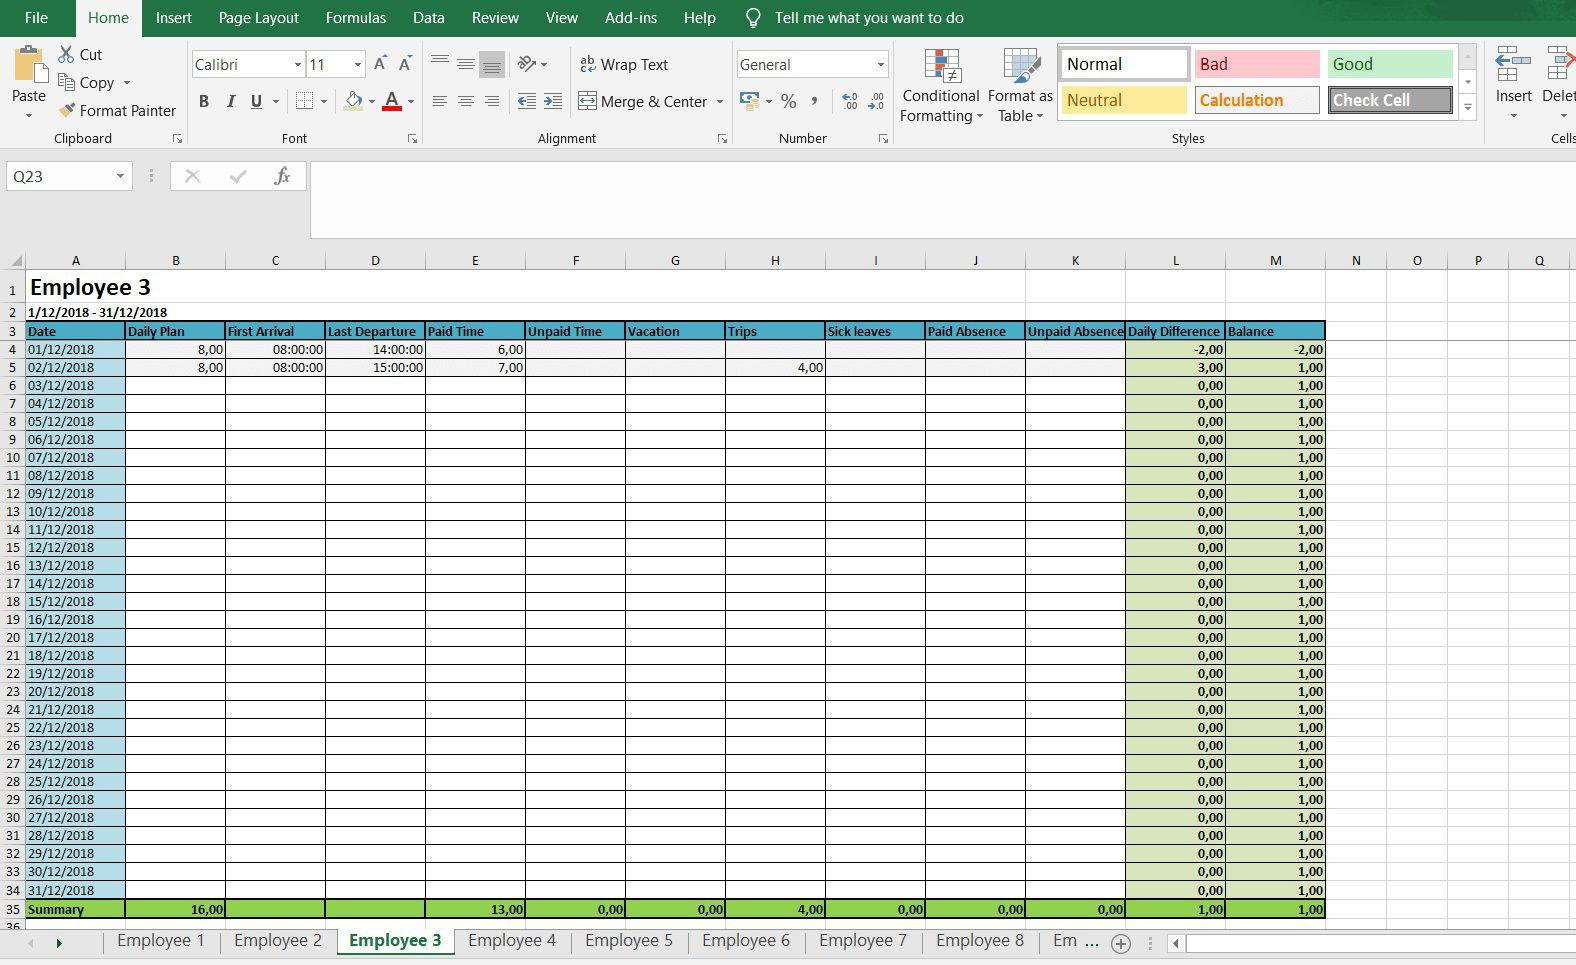 006 Awful Excel Timesheet Template With Formula High Resolution  Formulas Biweekly DailyFull